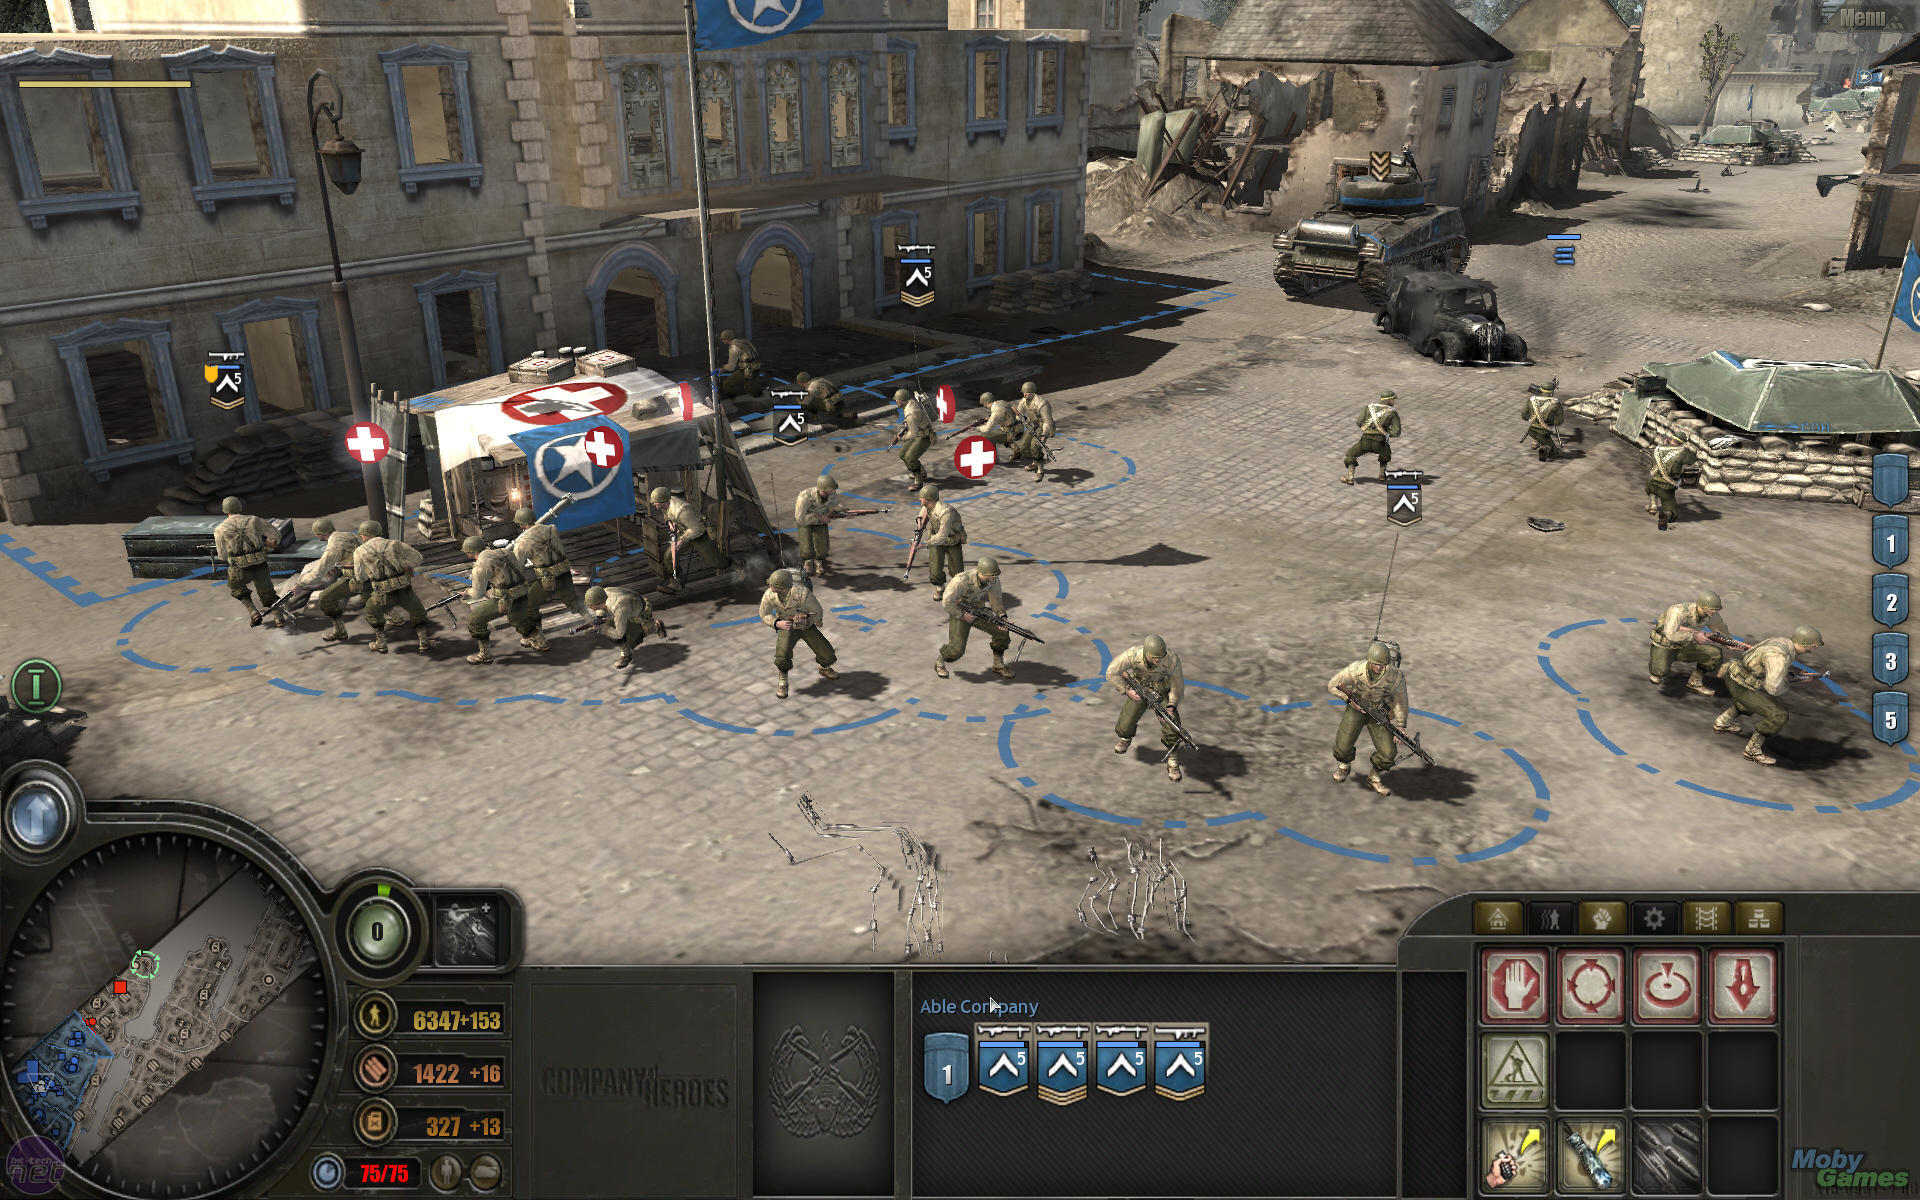 Company Of Heroes 2 Pics, Video Game Collection